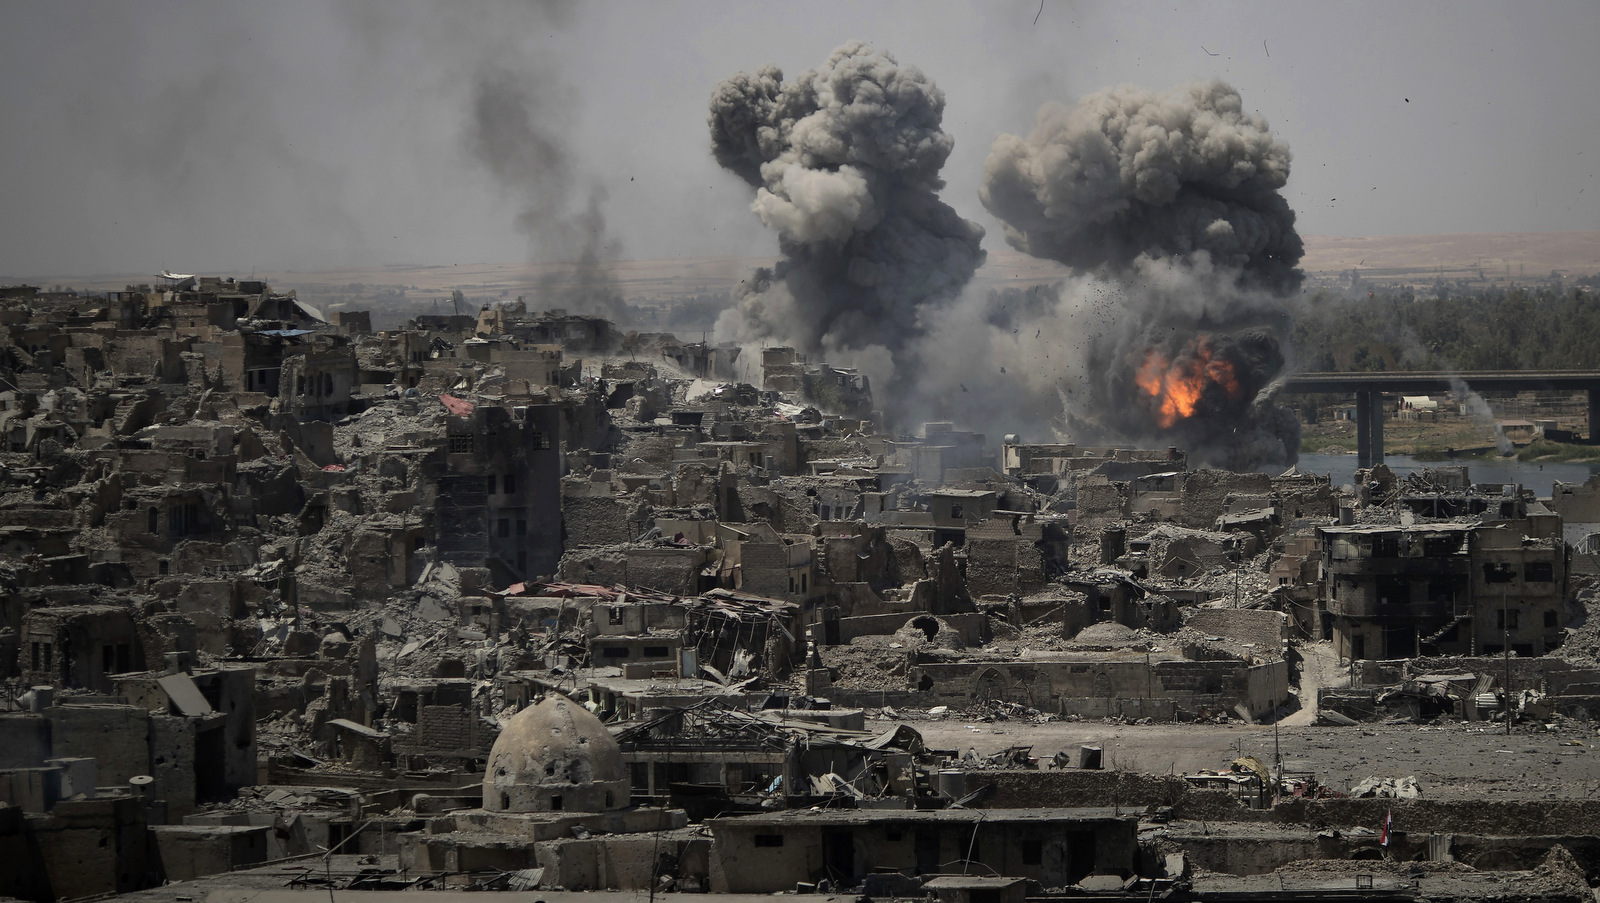 us,-allies-drop-46-bombs-per-day-for-20-years-in-middle-east-and-africa